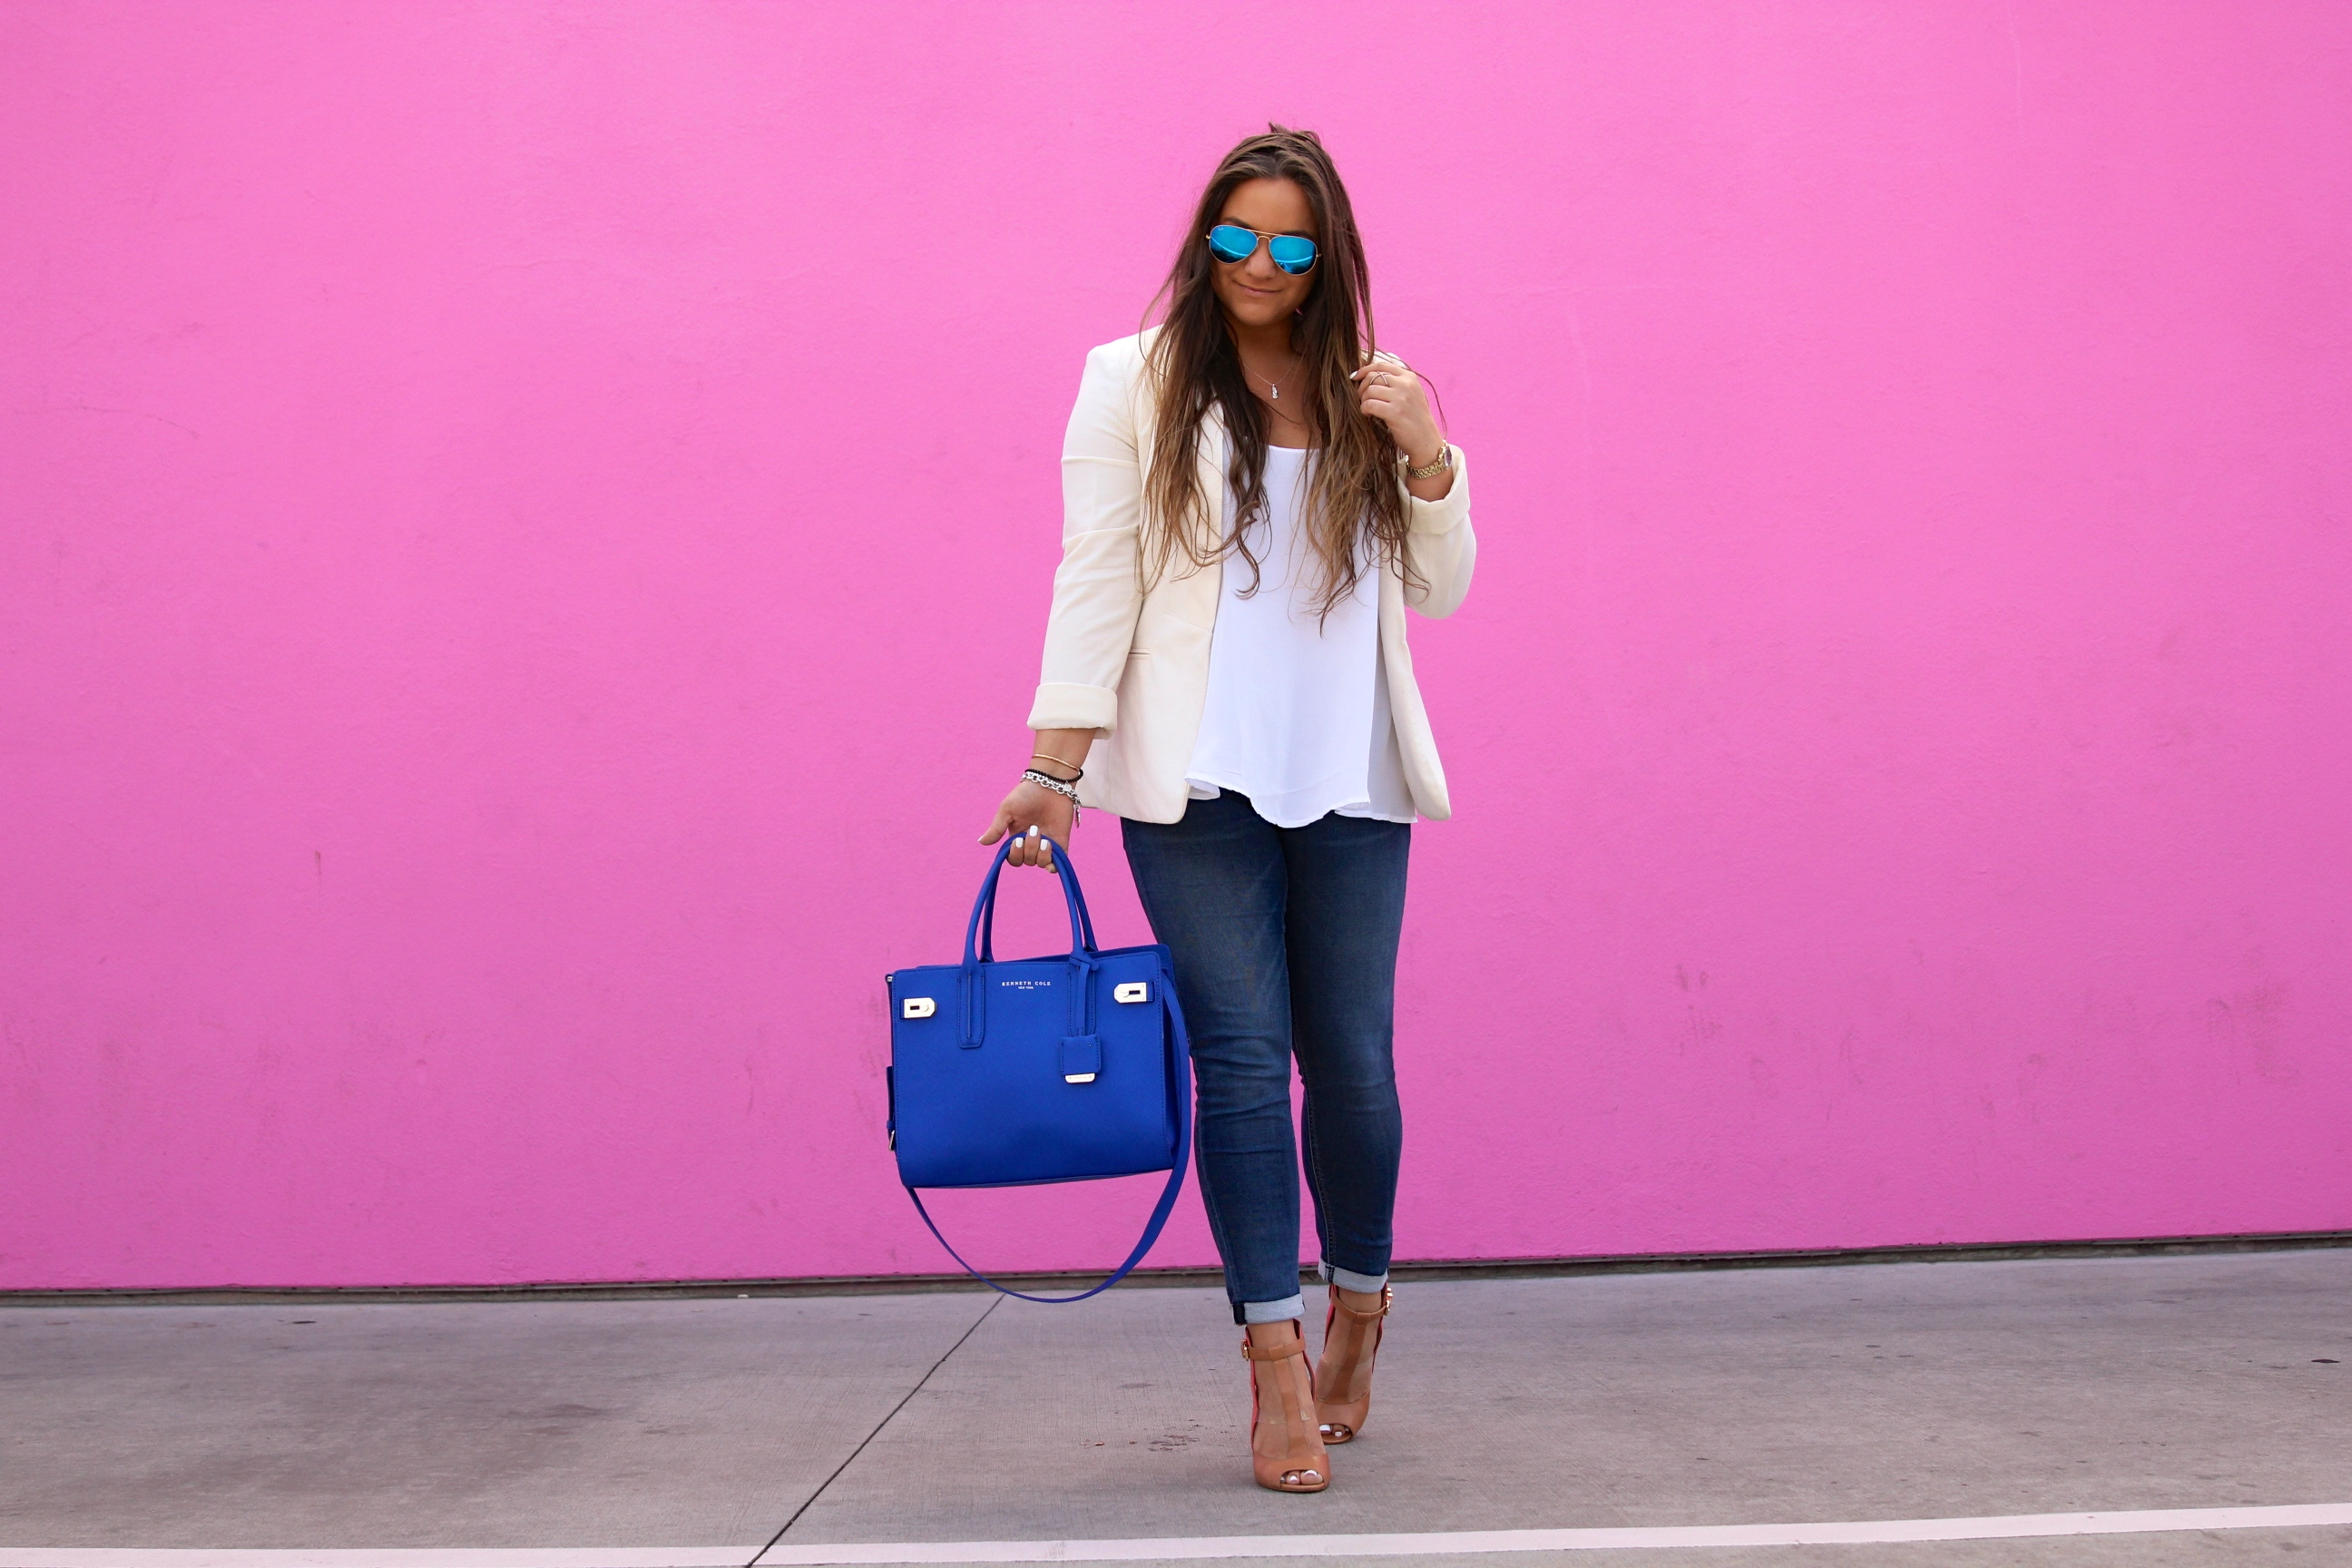 missyonmadison, melissa tierney, cobalt blue satchel, blue satchel, blue handbag, skinny jeans, lightwash skinny jeans, cuffed up skinny jeans, white chiffon camisole, white blazer, white boyfriend blazer, tan heeled sandals, ray bans, aviators, blue aviators, la blogger, fashion blogger, style blogger, style blog, street style, fall style, los angeles, pink wall,